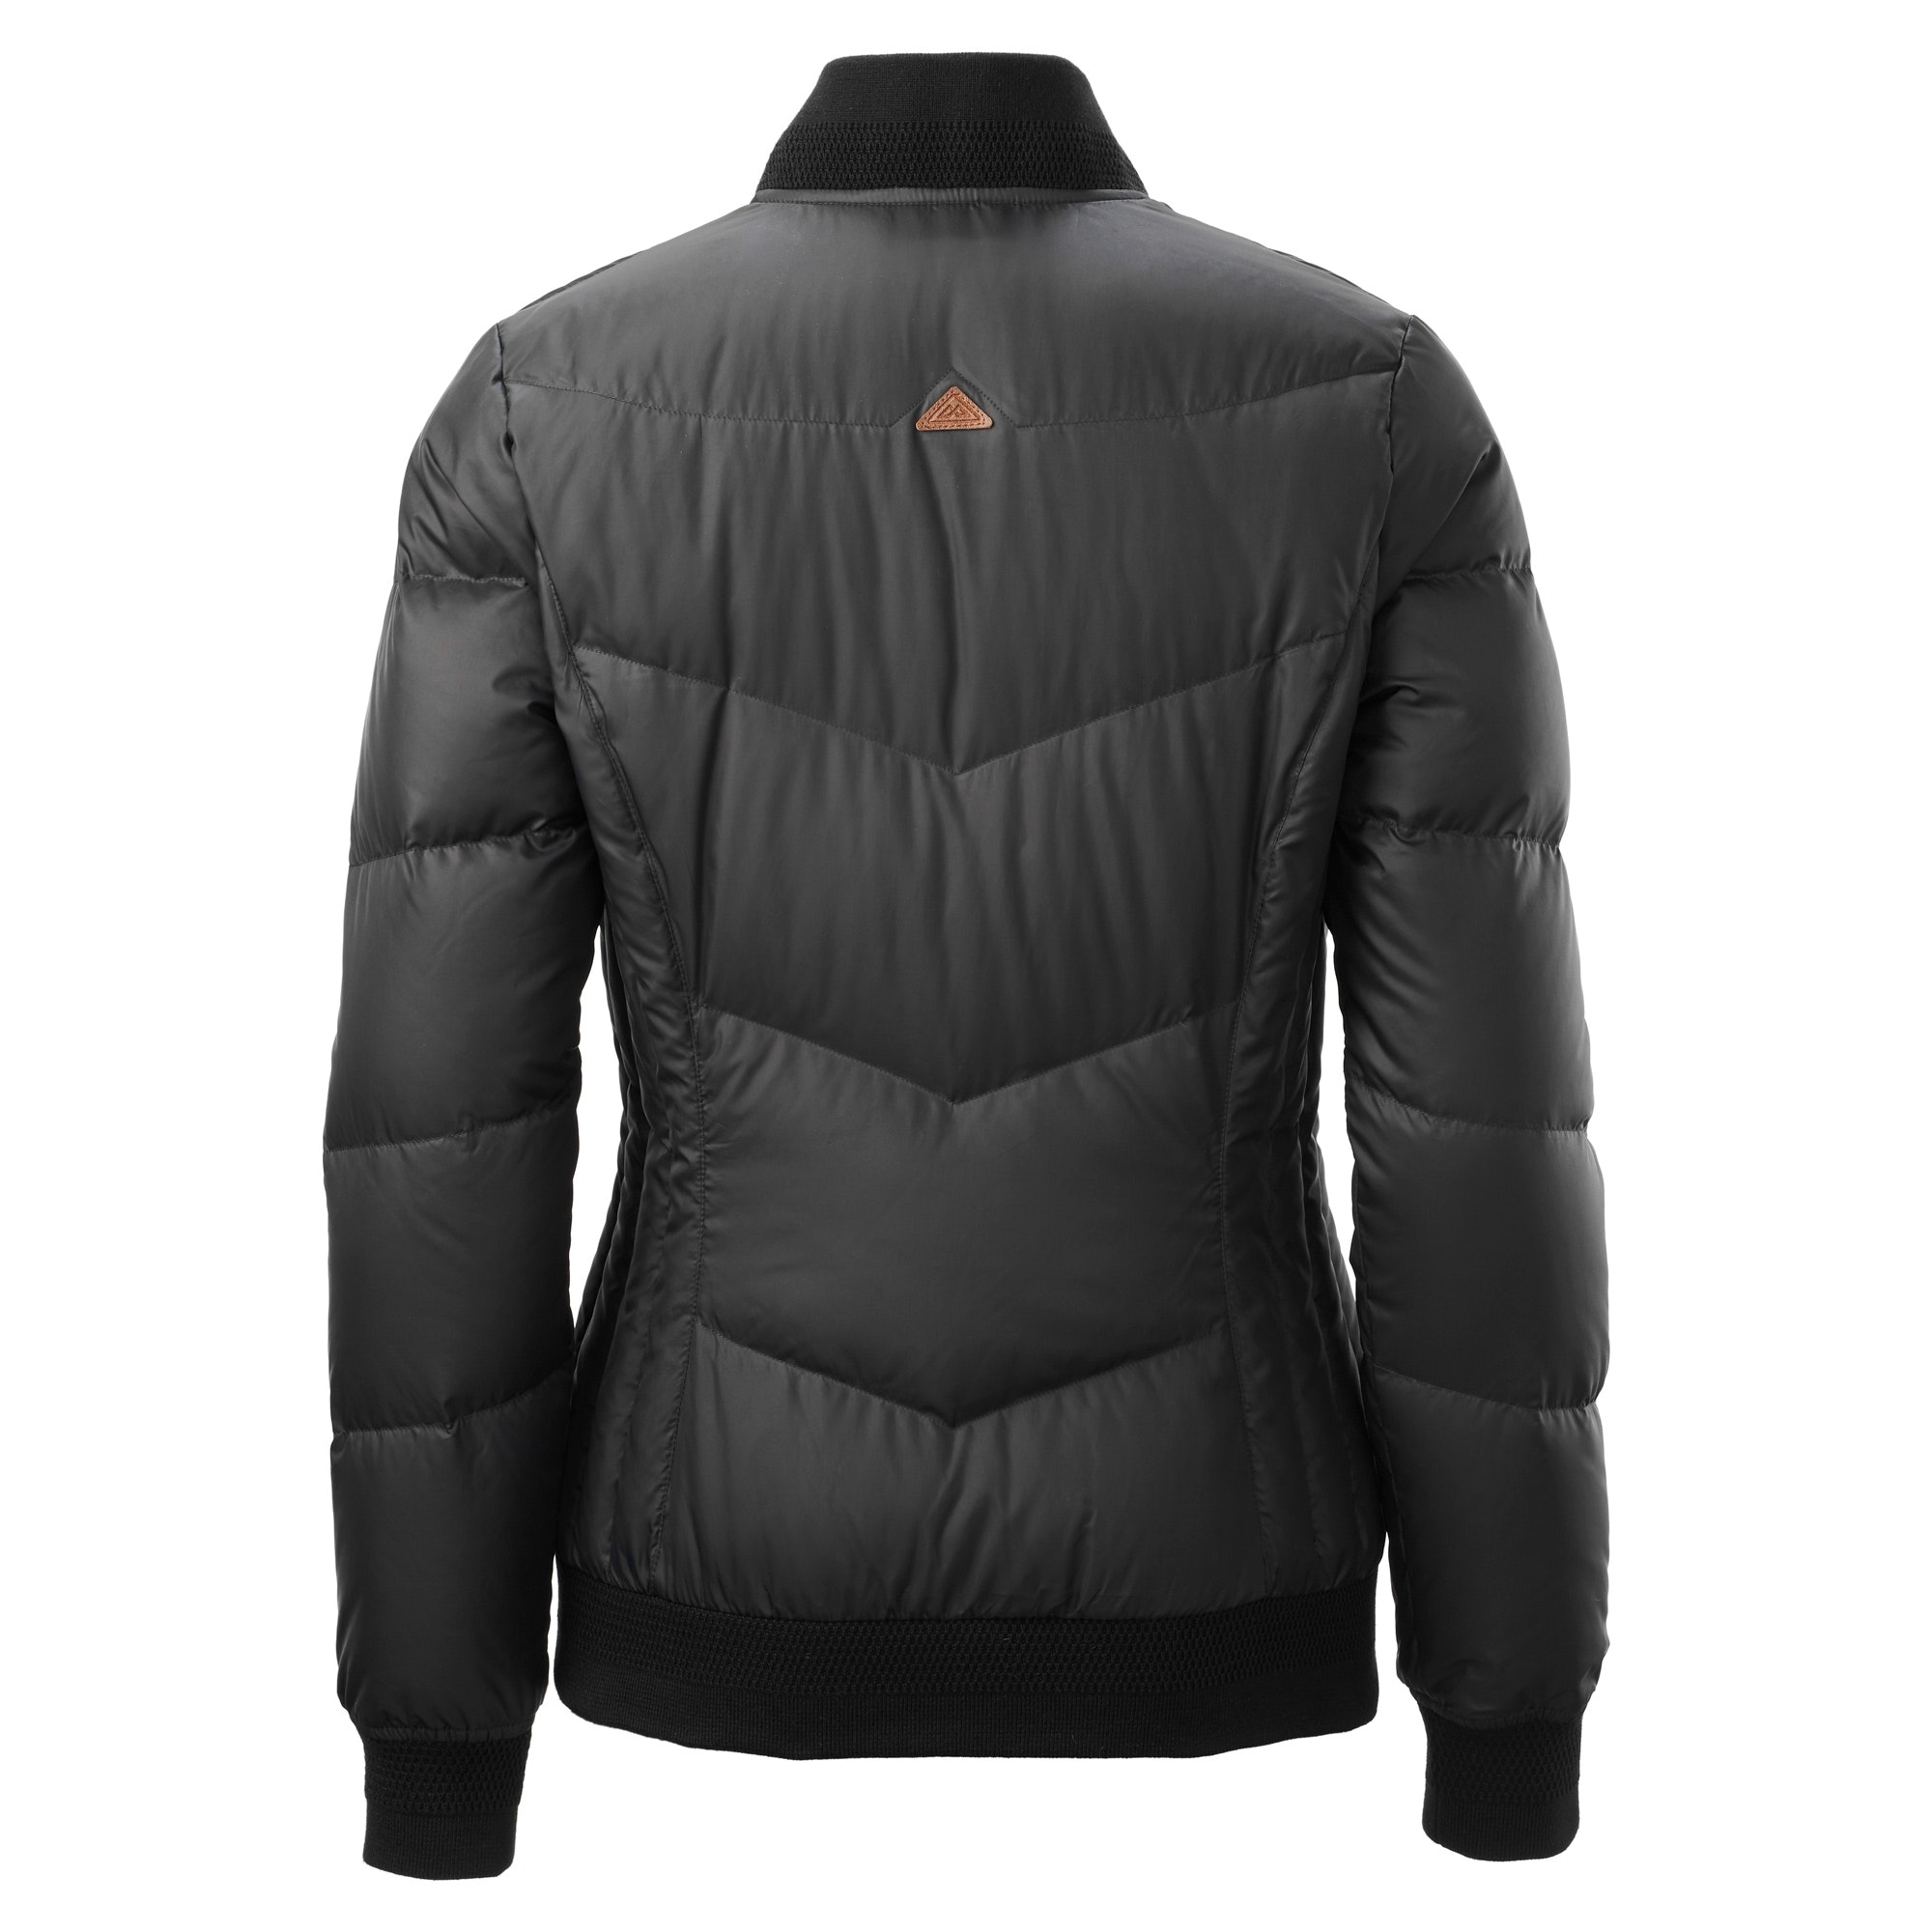 Kathmandu-Federate-Durable-Water-Repellent-Warm-Down-Classic-Bomber-Women-Jacket